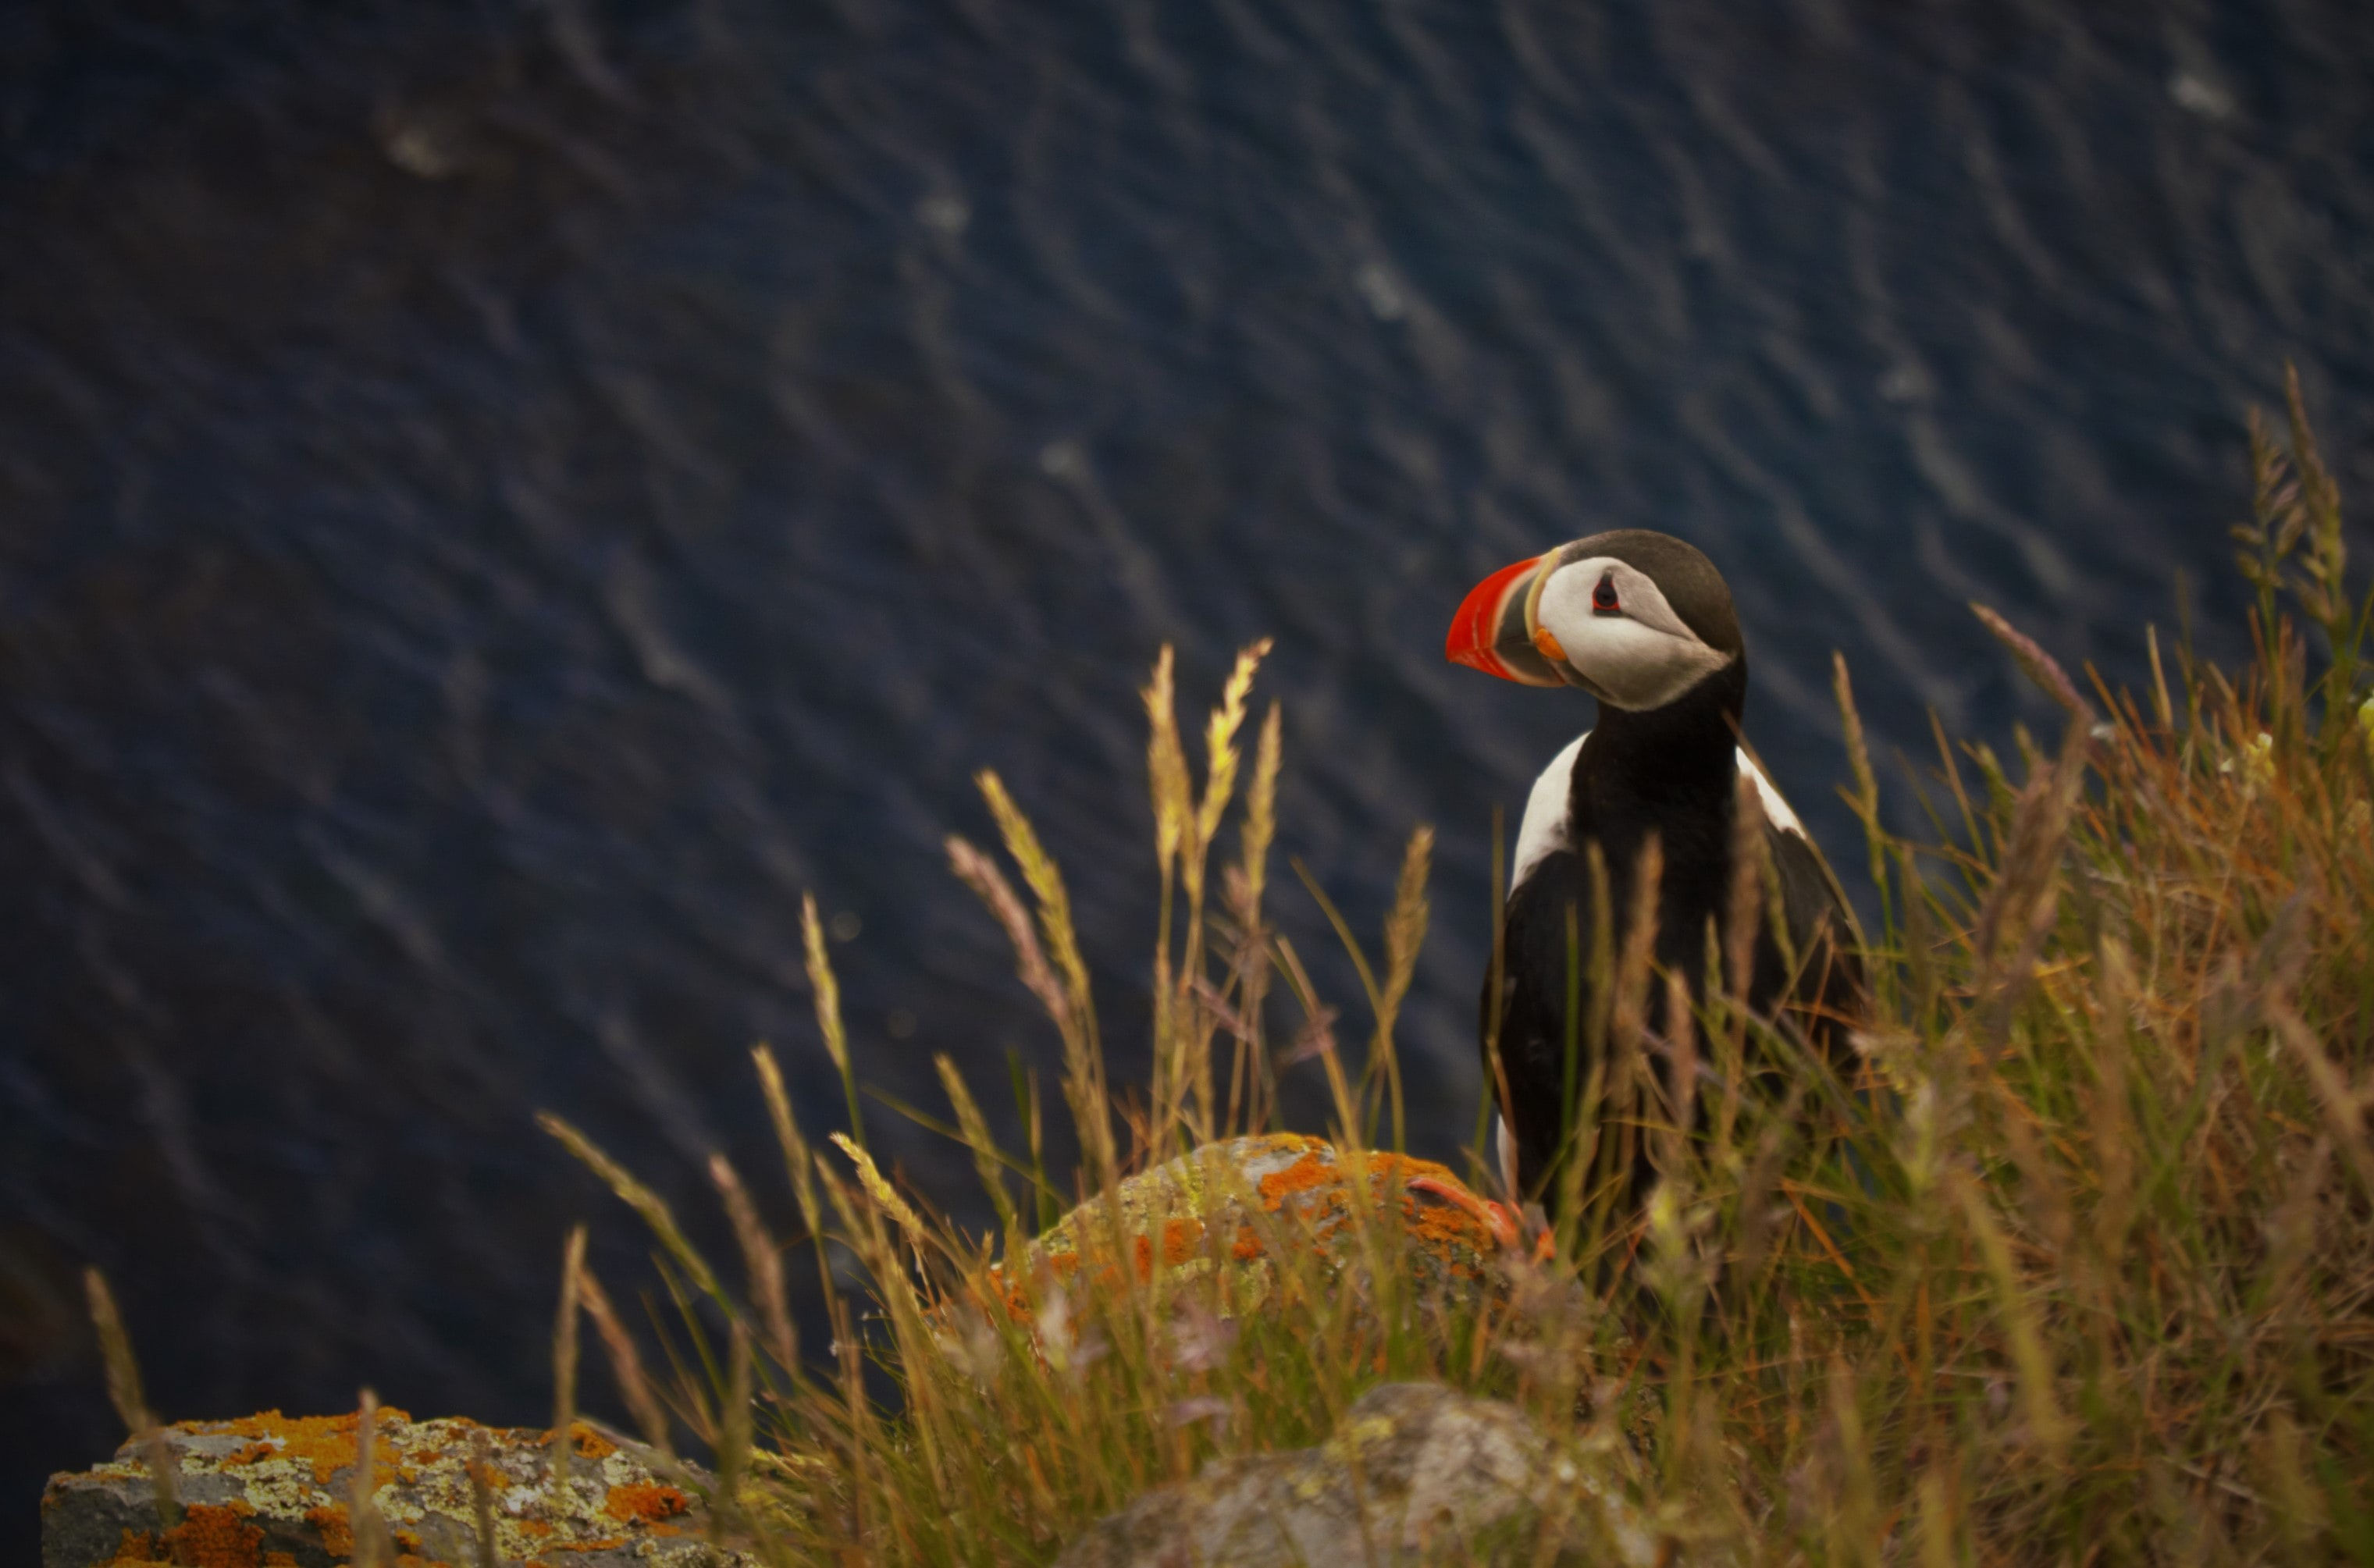 Puffin in Ltrabjarg in the Westfjords of Iceland photo by Gissur Steinarsson